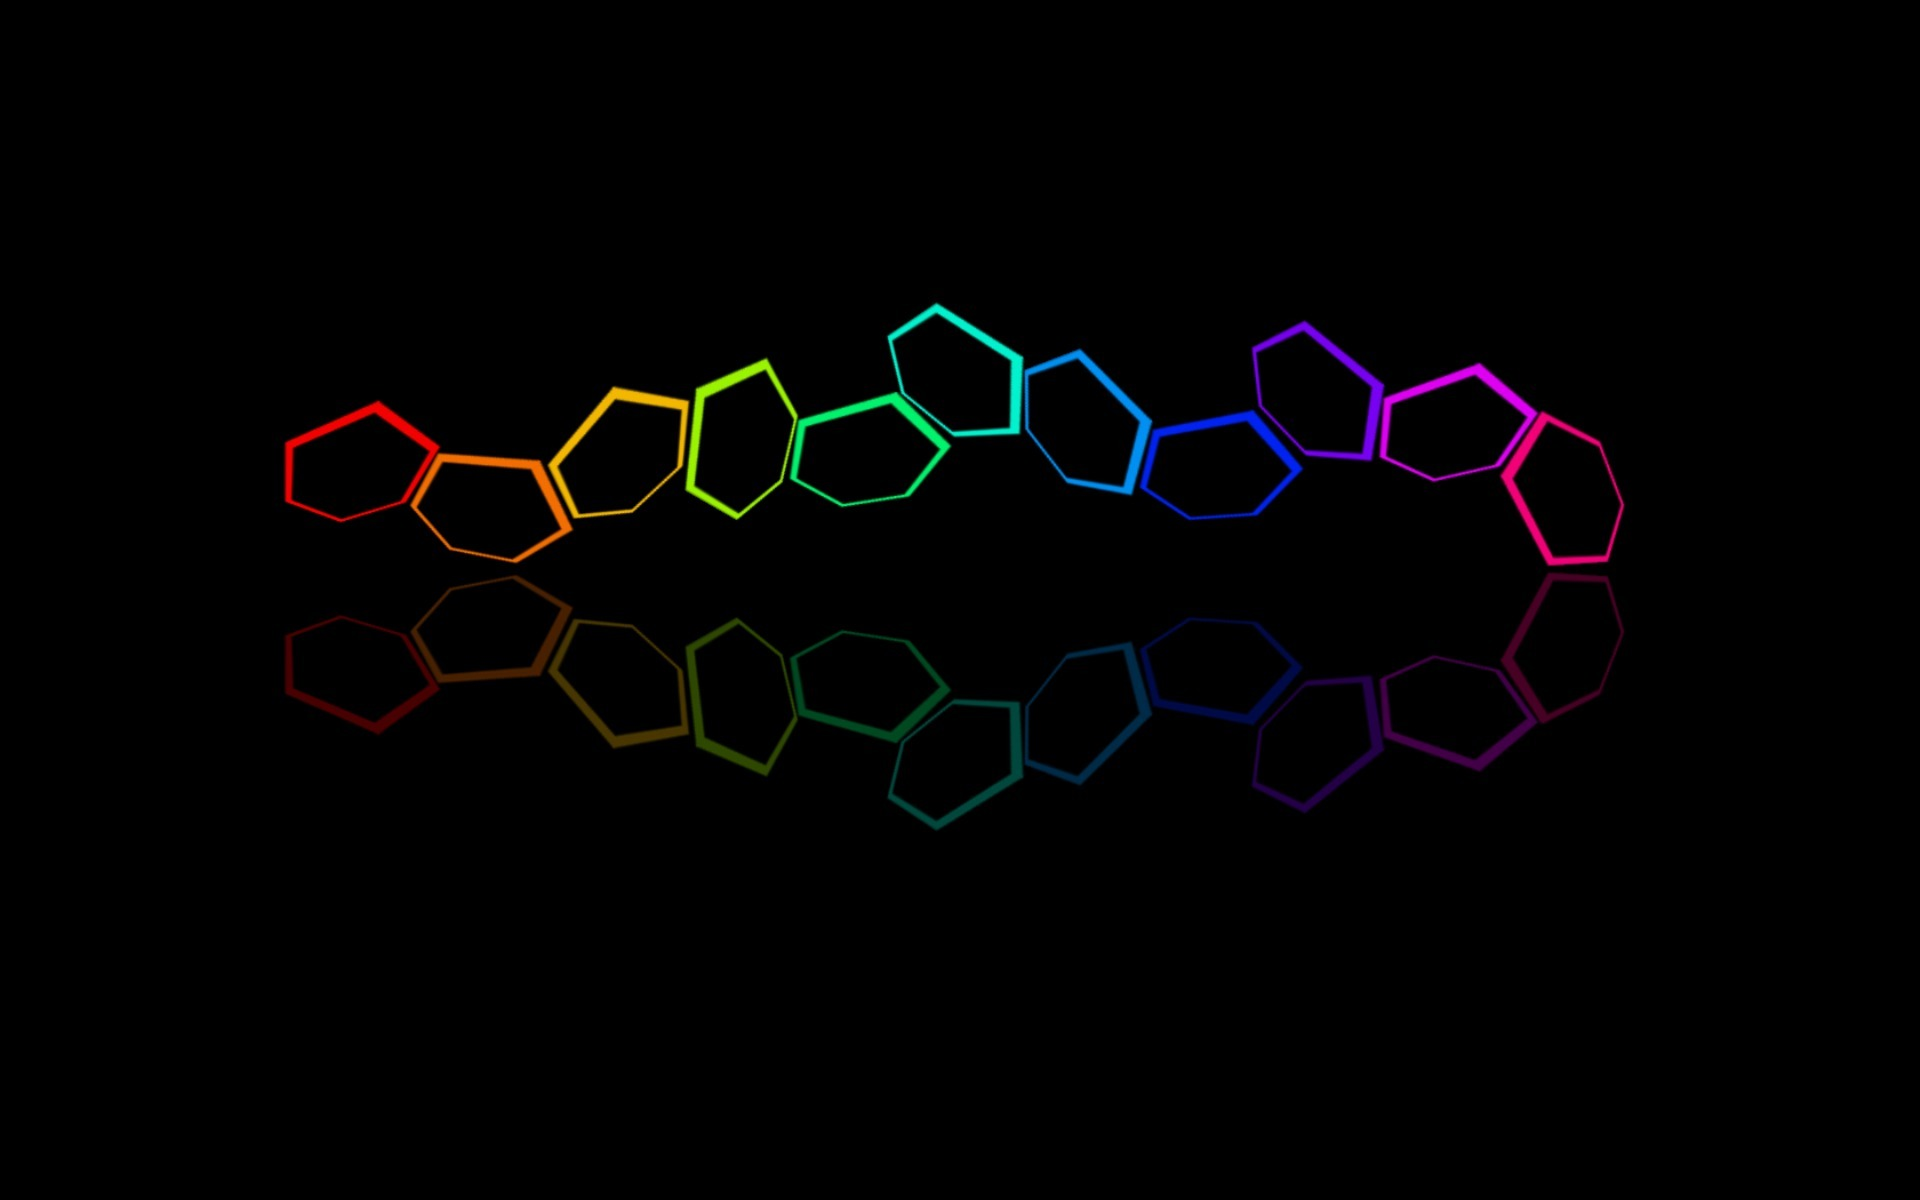 colorful dark backgrounds 18339 1920x1200px